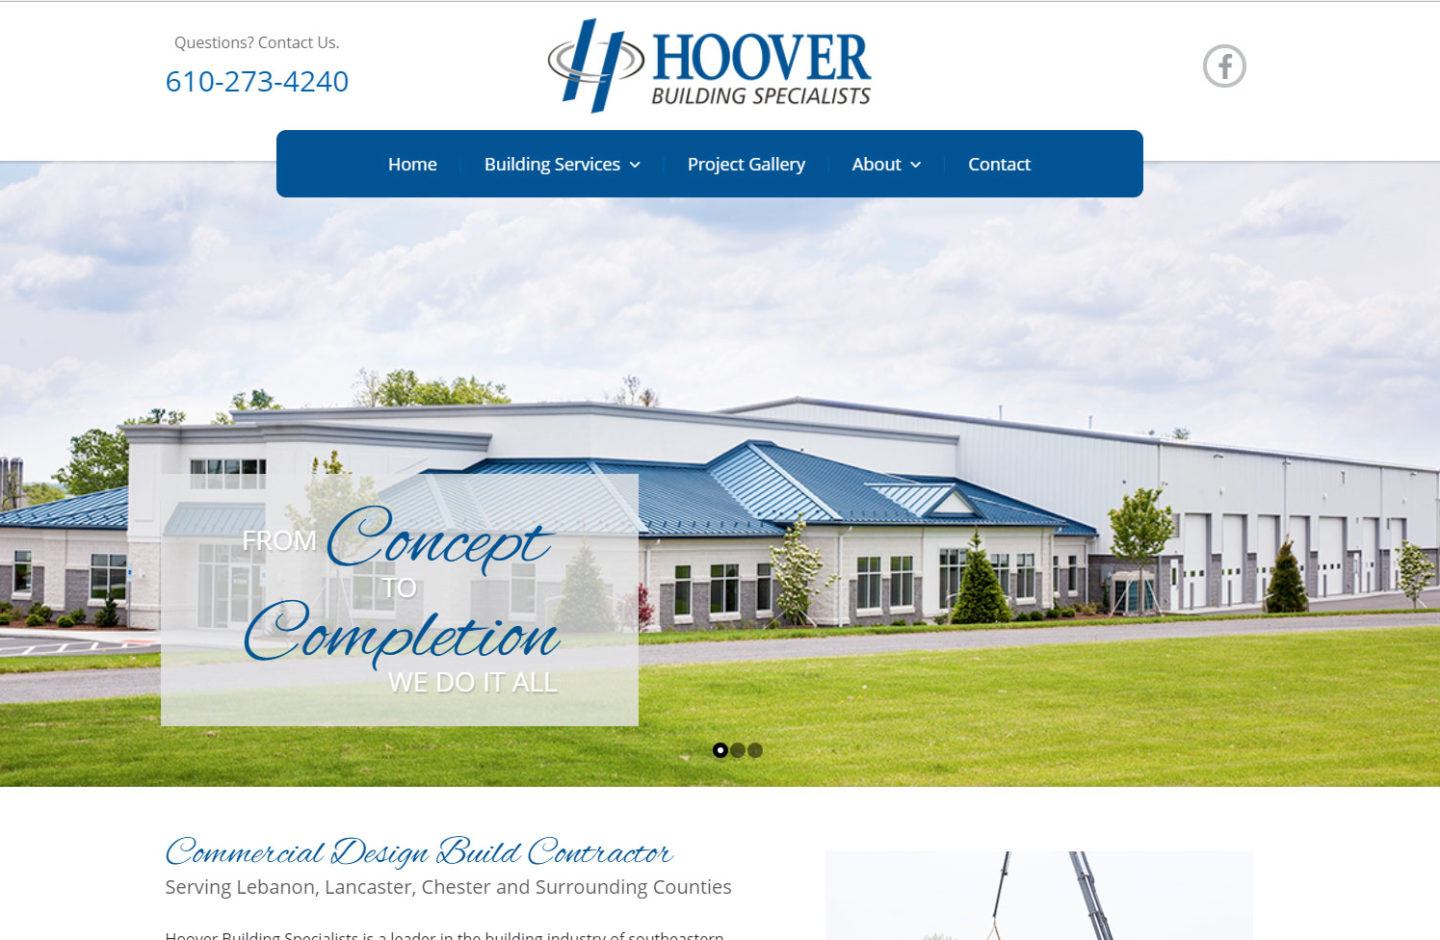 Hoover Building Specialists